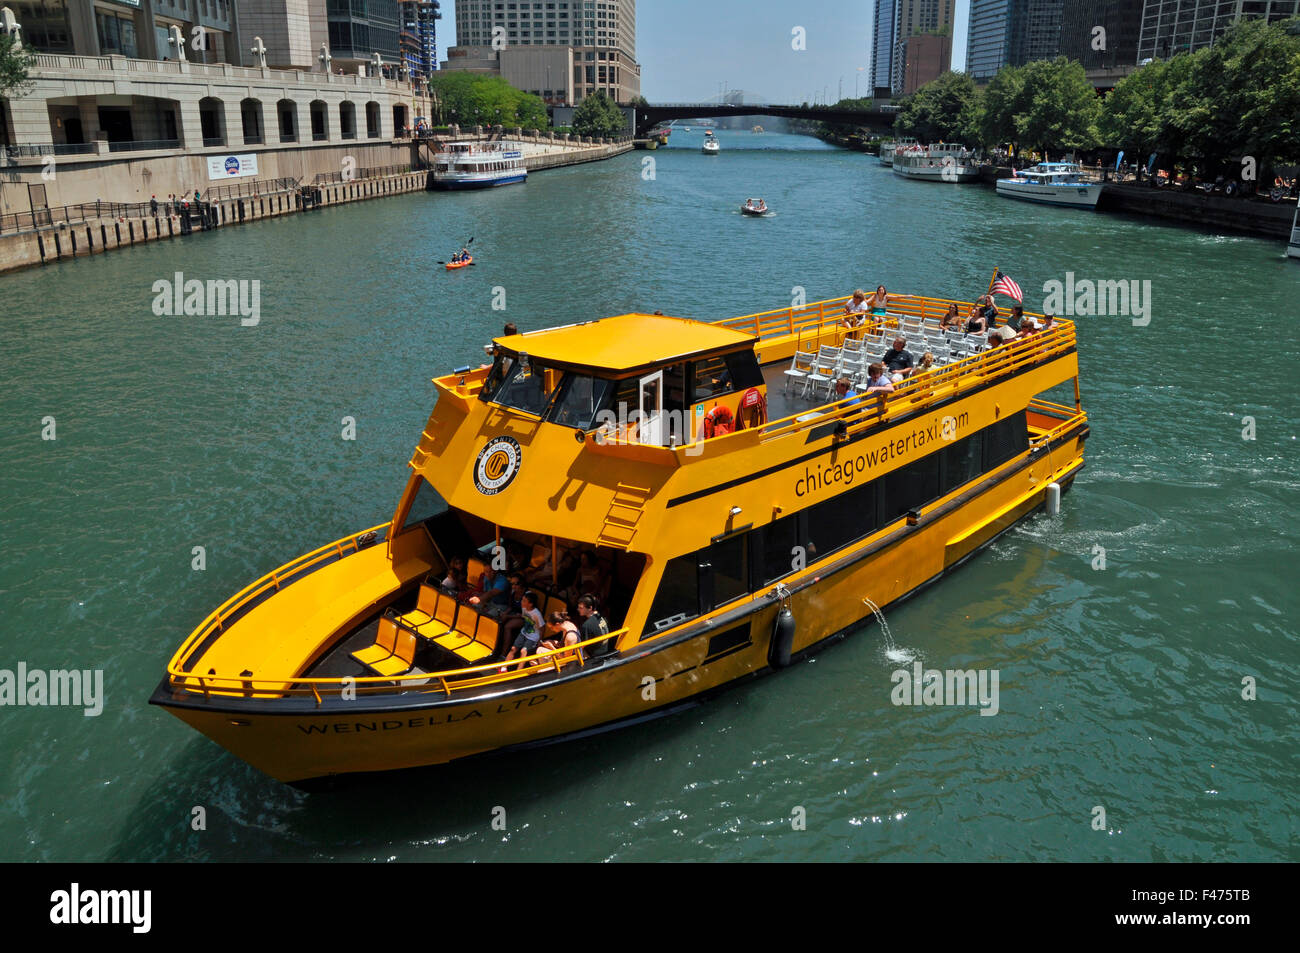 Chicago watertaxi on Chicago River, Chicago, Illinois, United States of America - Stock Image